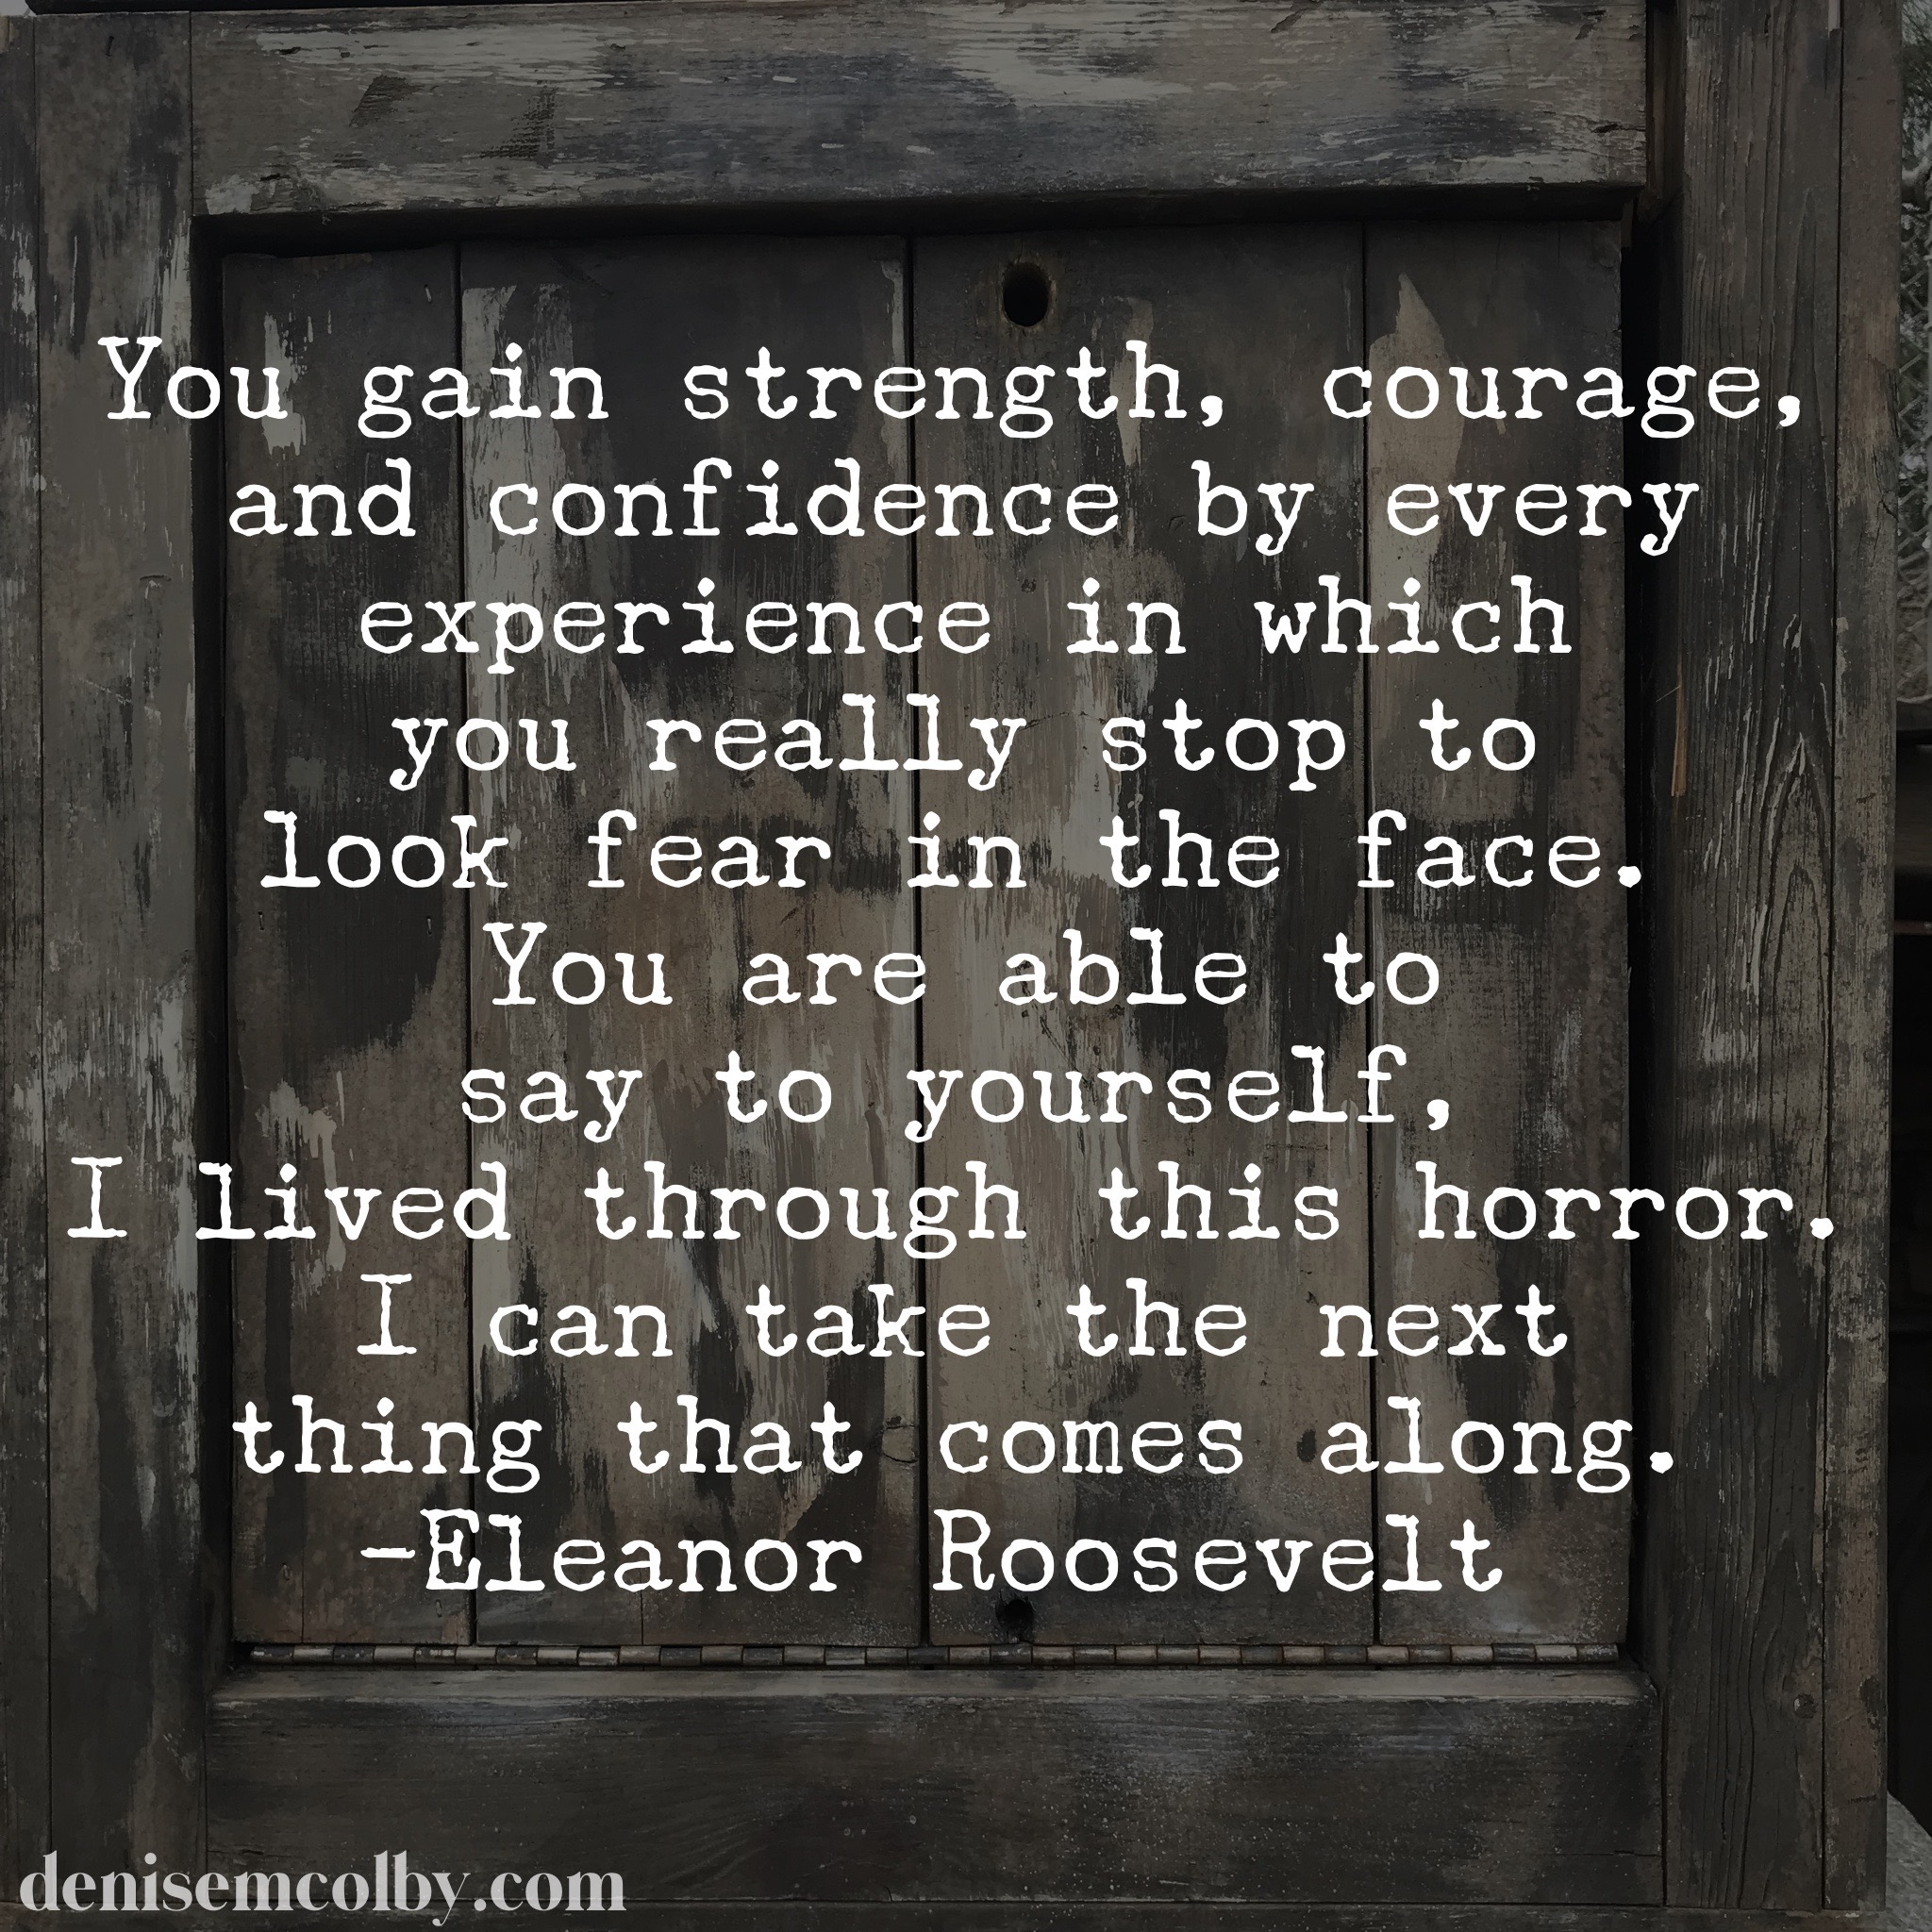 Eleanor Roosevelt Quote about strength, courage and confidence over a wooden crate background by Denise M. Colby